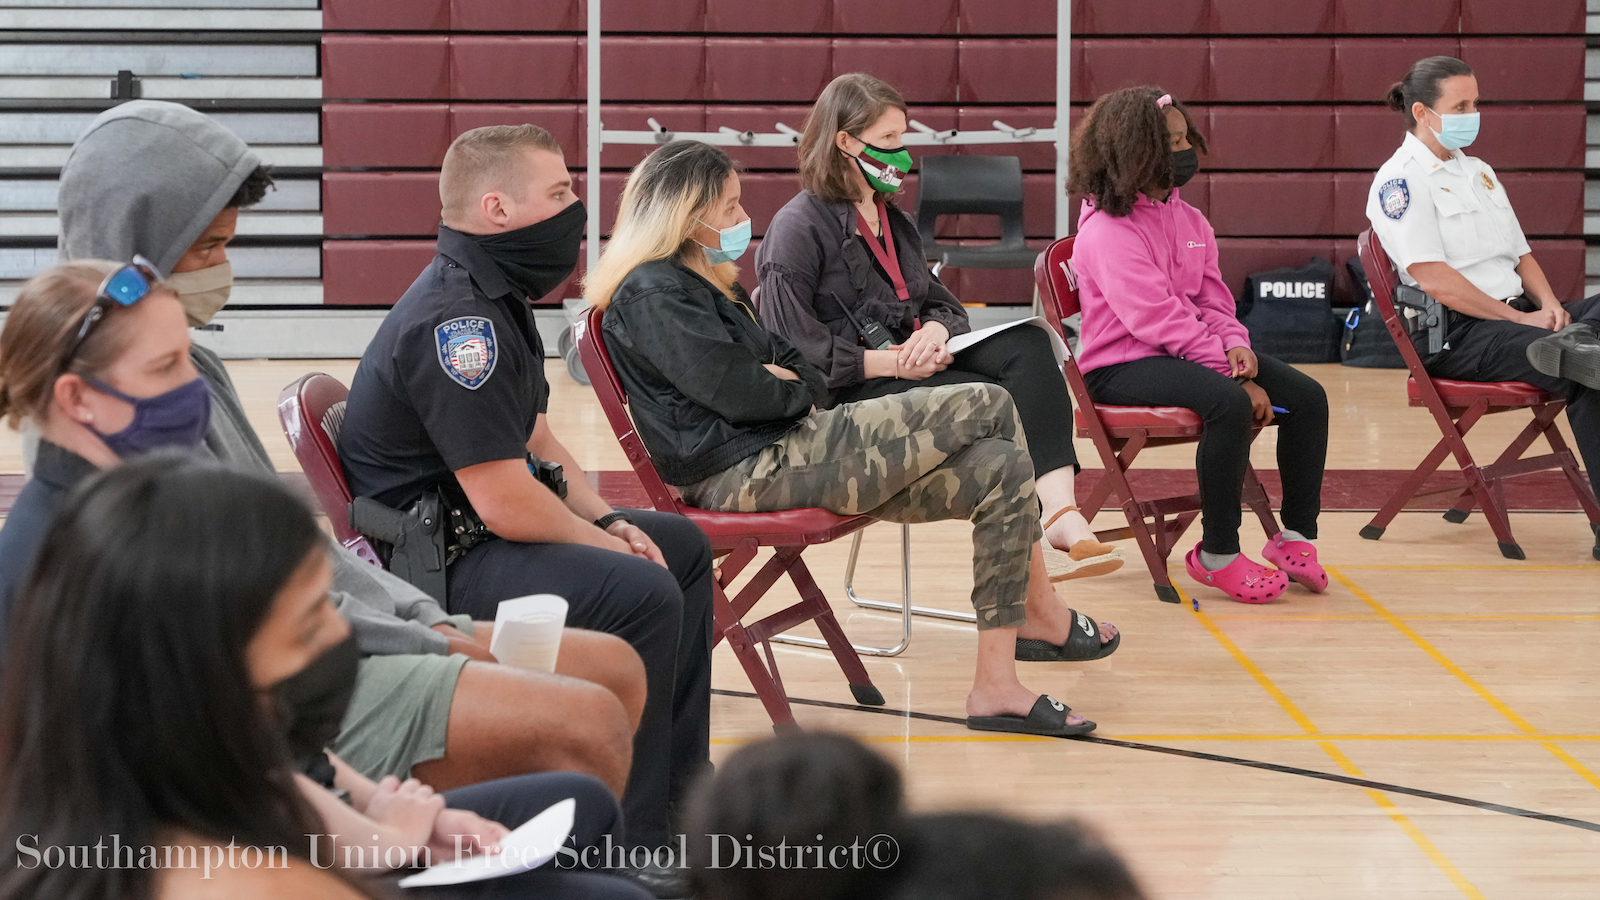 Southampton High School students recently had the opportunity to sit down and speak openly with officers from the Southampton Village Police Department.